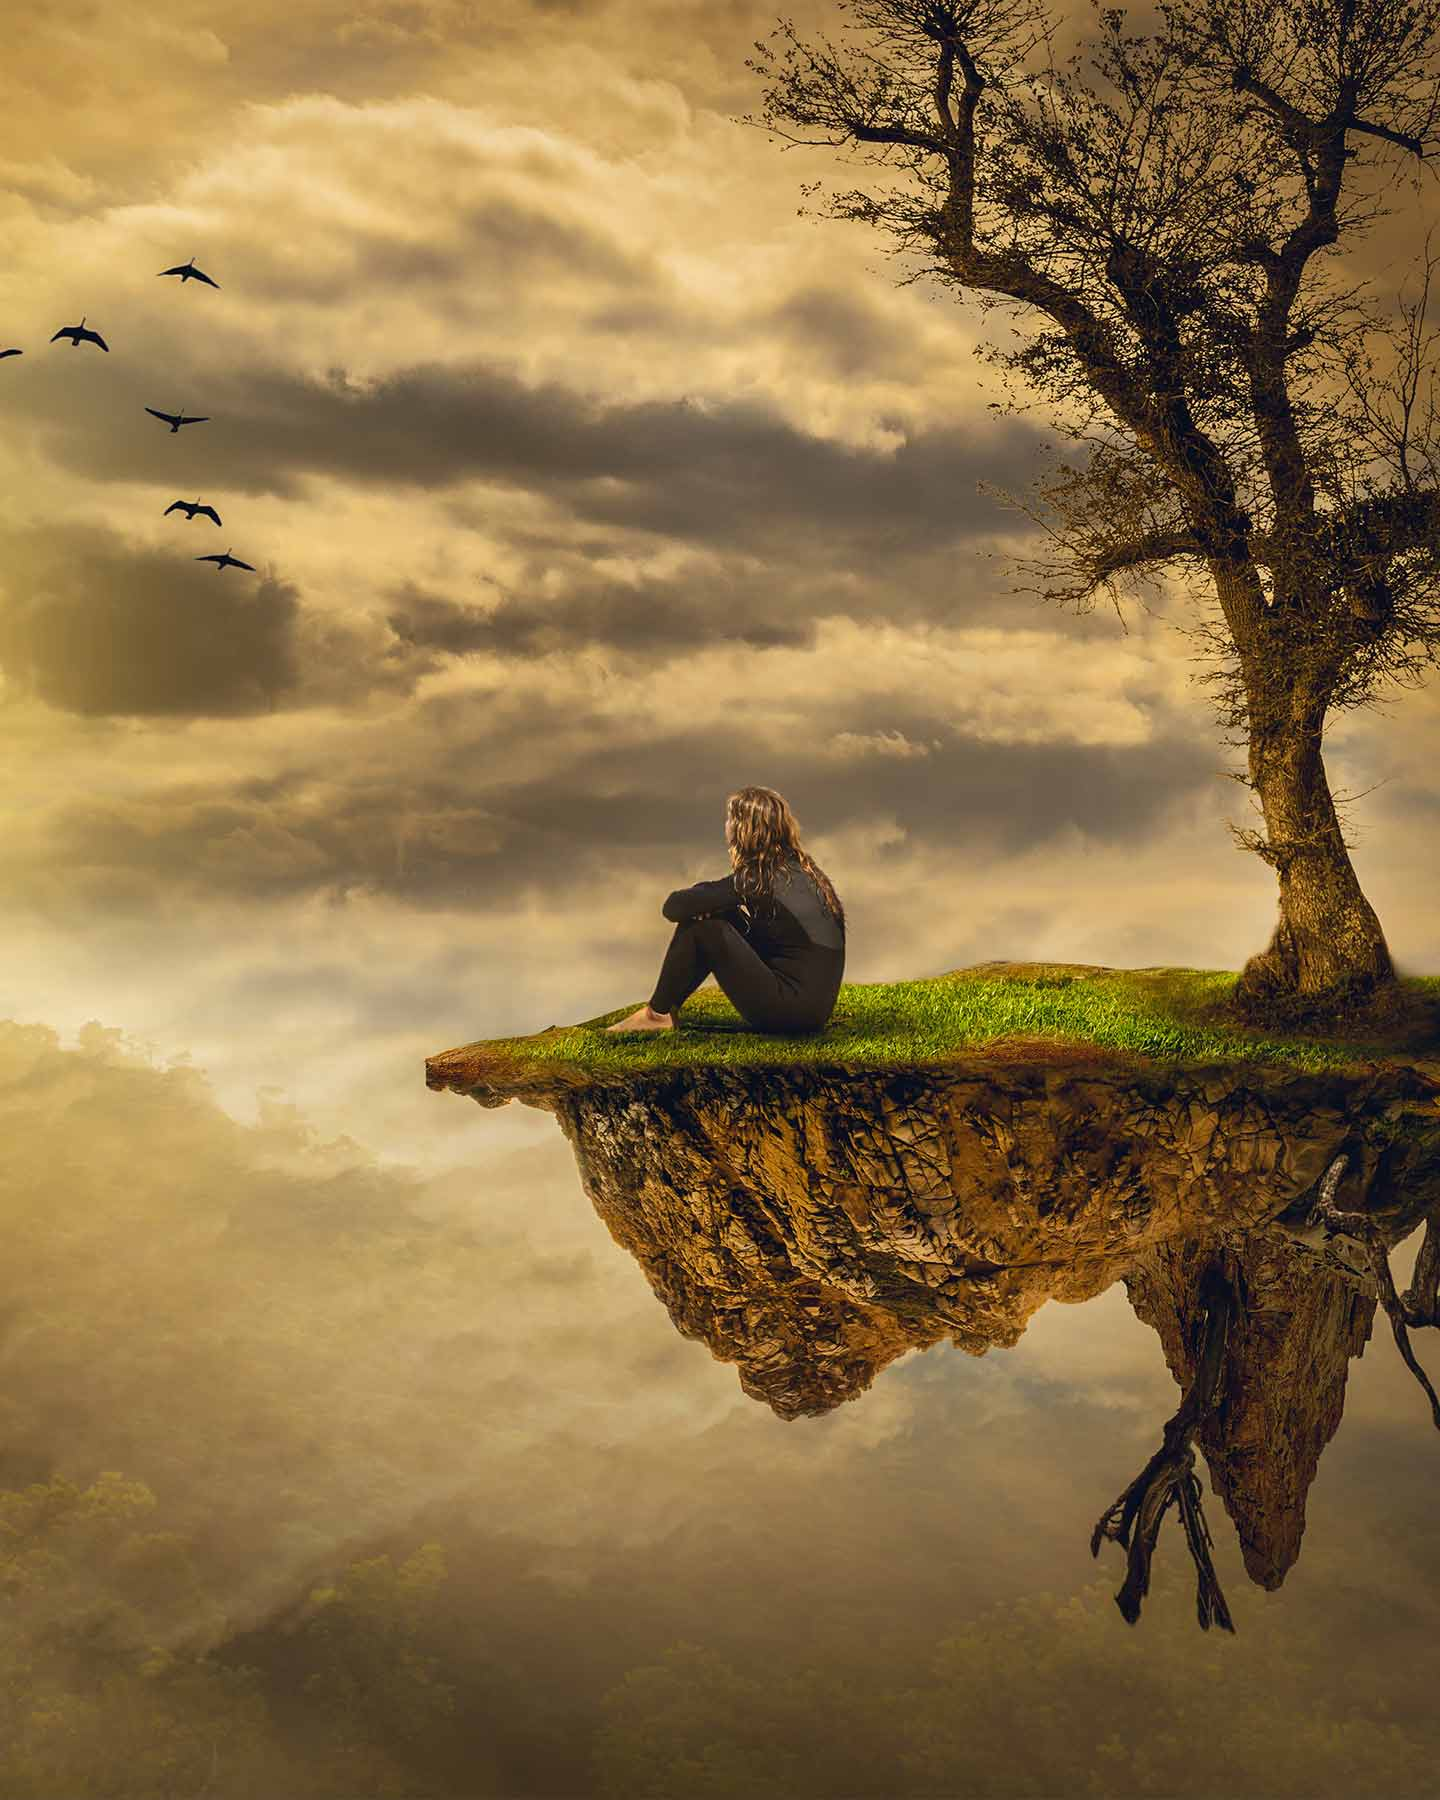 woman on small piece of land floating in sky - fantasy